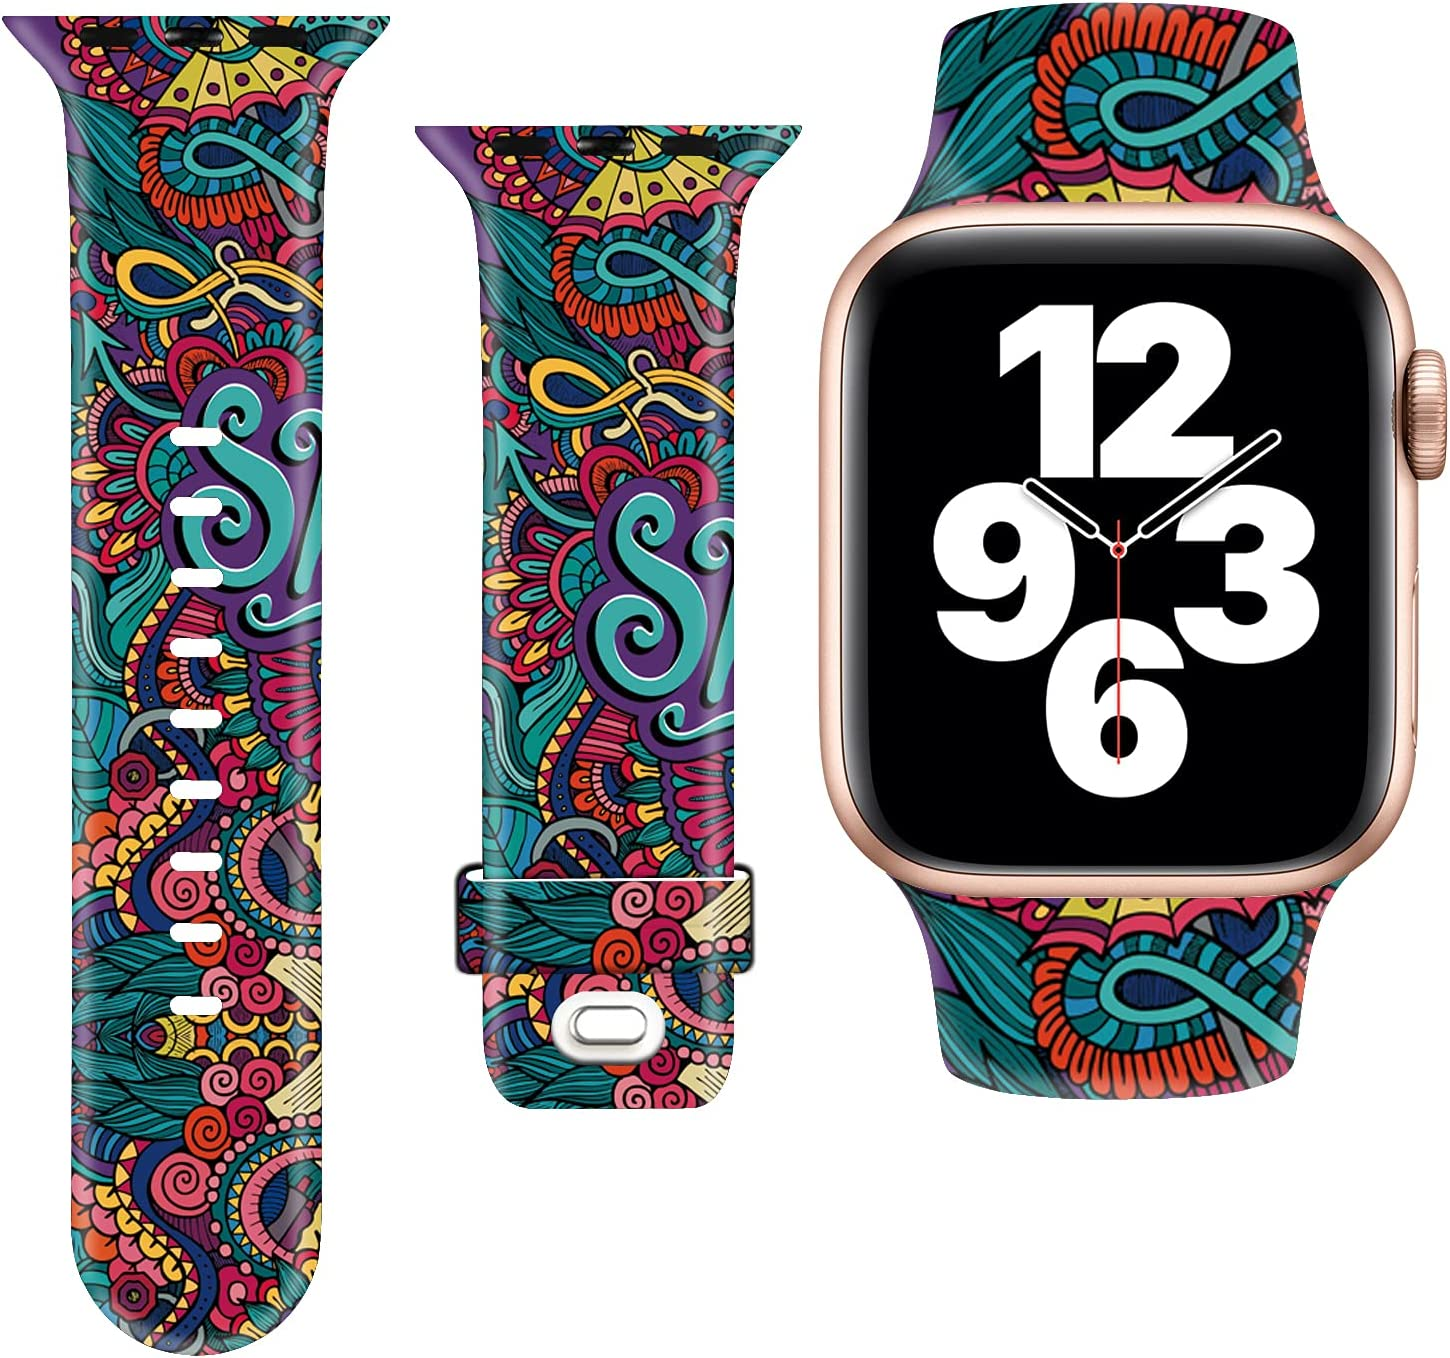 LANGXIAN Cute Print Pattern for iWatch Bands 38mm 42mm, Sport Silicone Strap Compatible with Apple Watch Bands 41mm 45mm 40mm 44mm Women Men for Series 7/6/5/4/3/2/1/SE (38/40/41mm,Totem Flower)